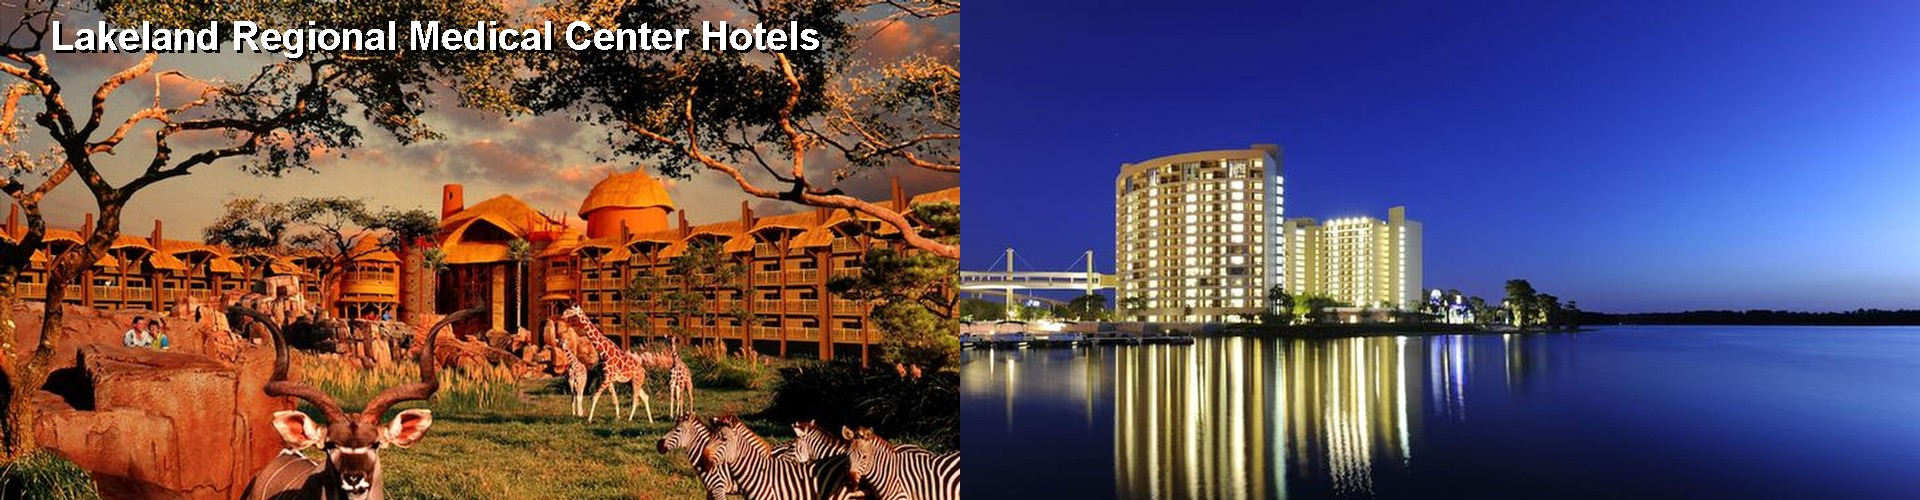 5 Best Hotels near Lakeland Regional Medical Center